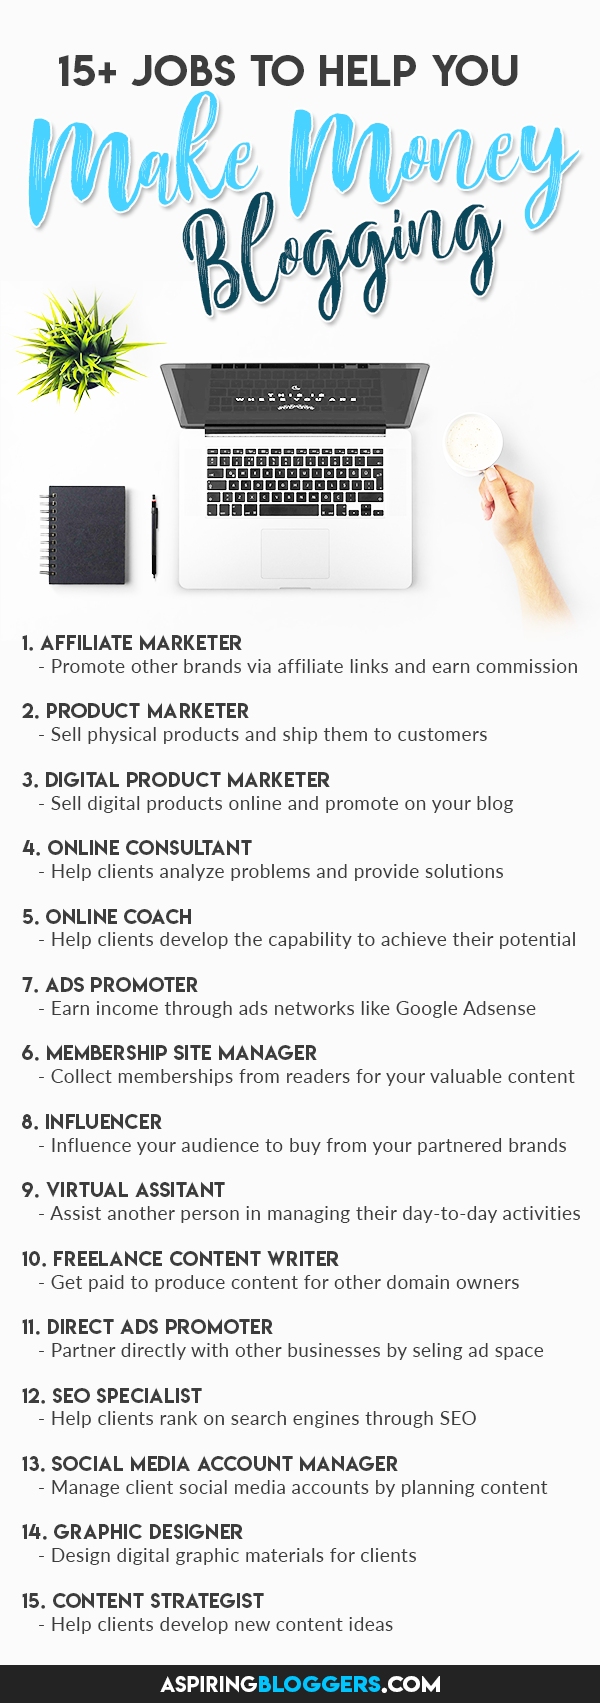 Want to make money online? Here are 15+ jobs that you can do from home! Click to find out more. How to Make Money Blogging   Make Money Online   Passive Income   Work at Home   Work From Home #makemoneyblogging #makemoneyonline